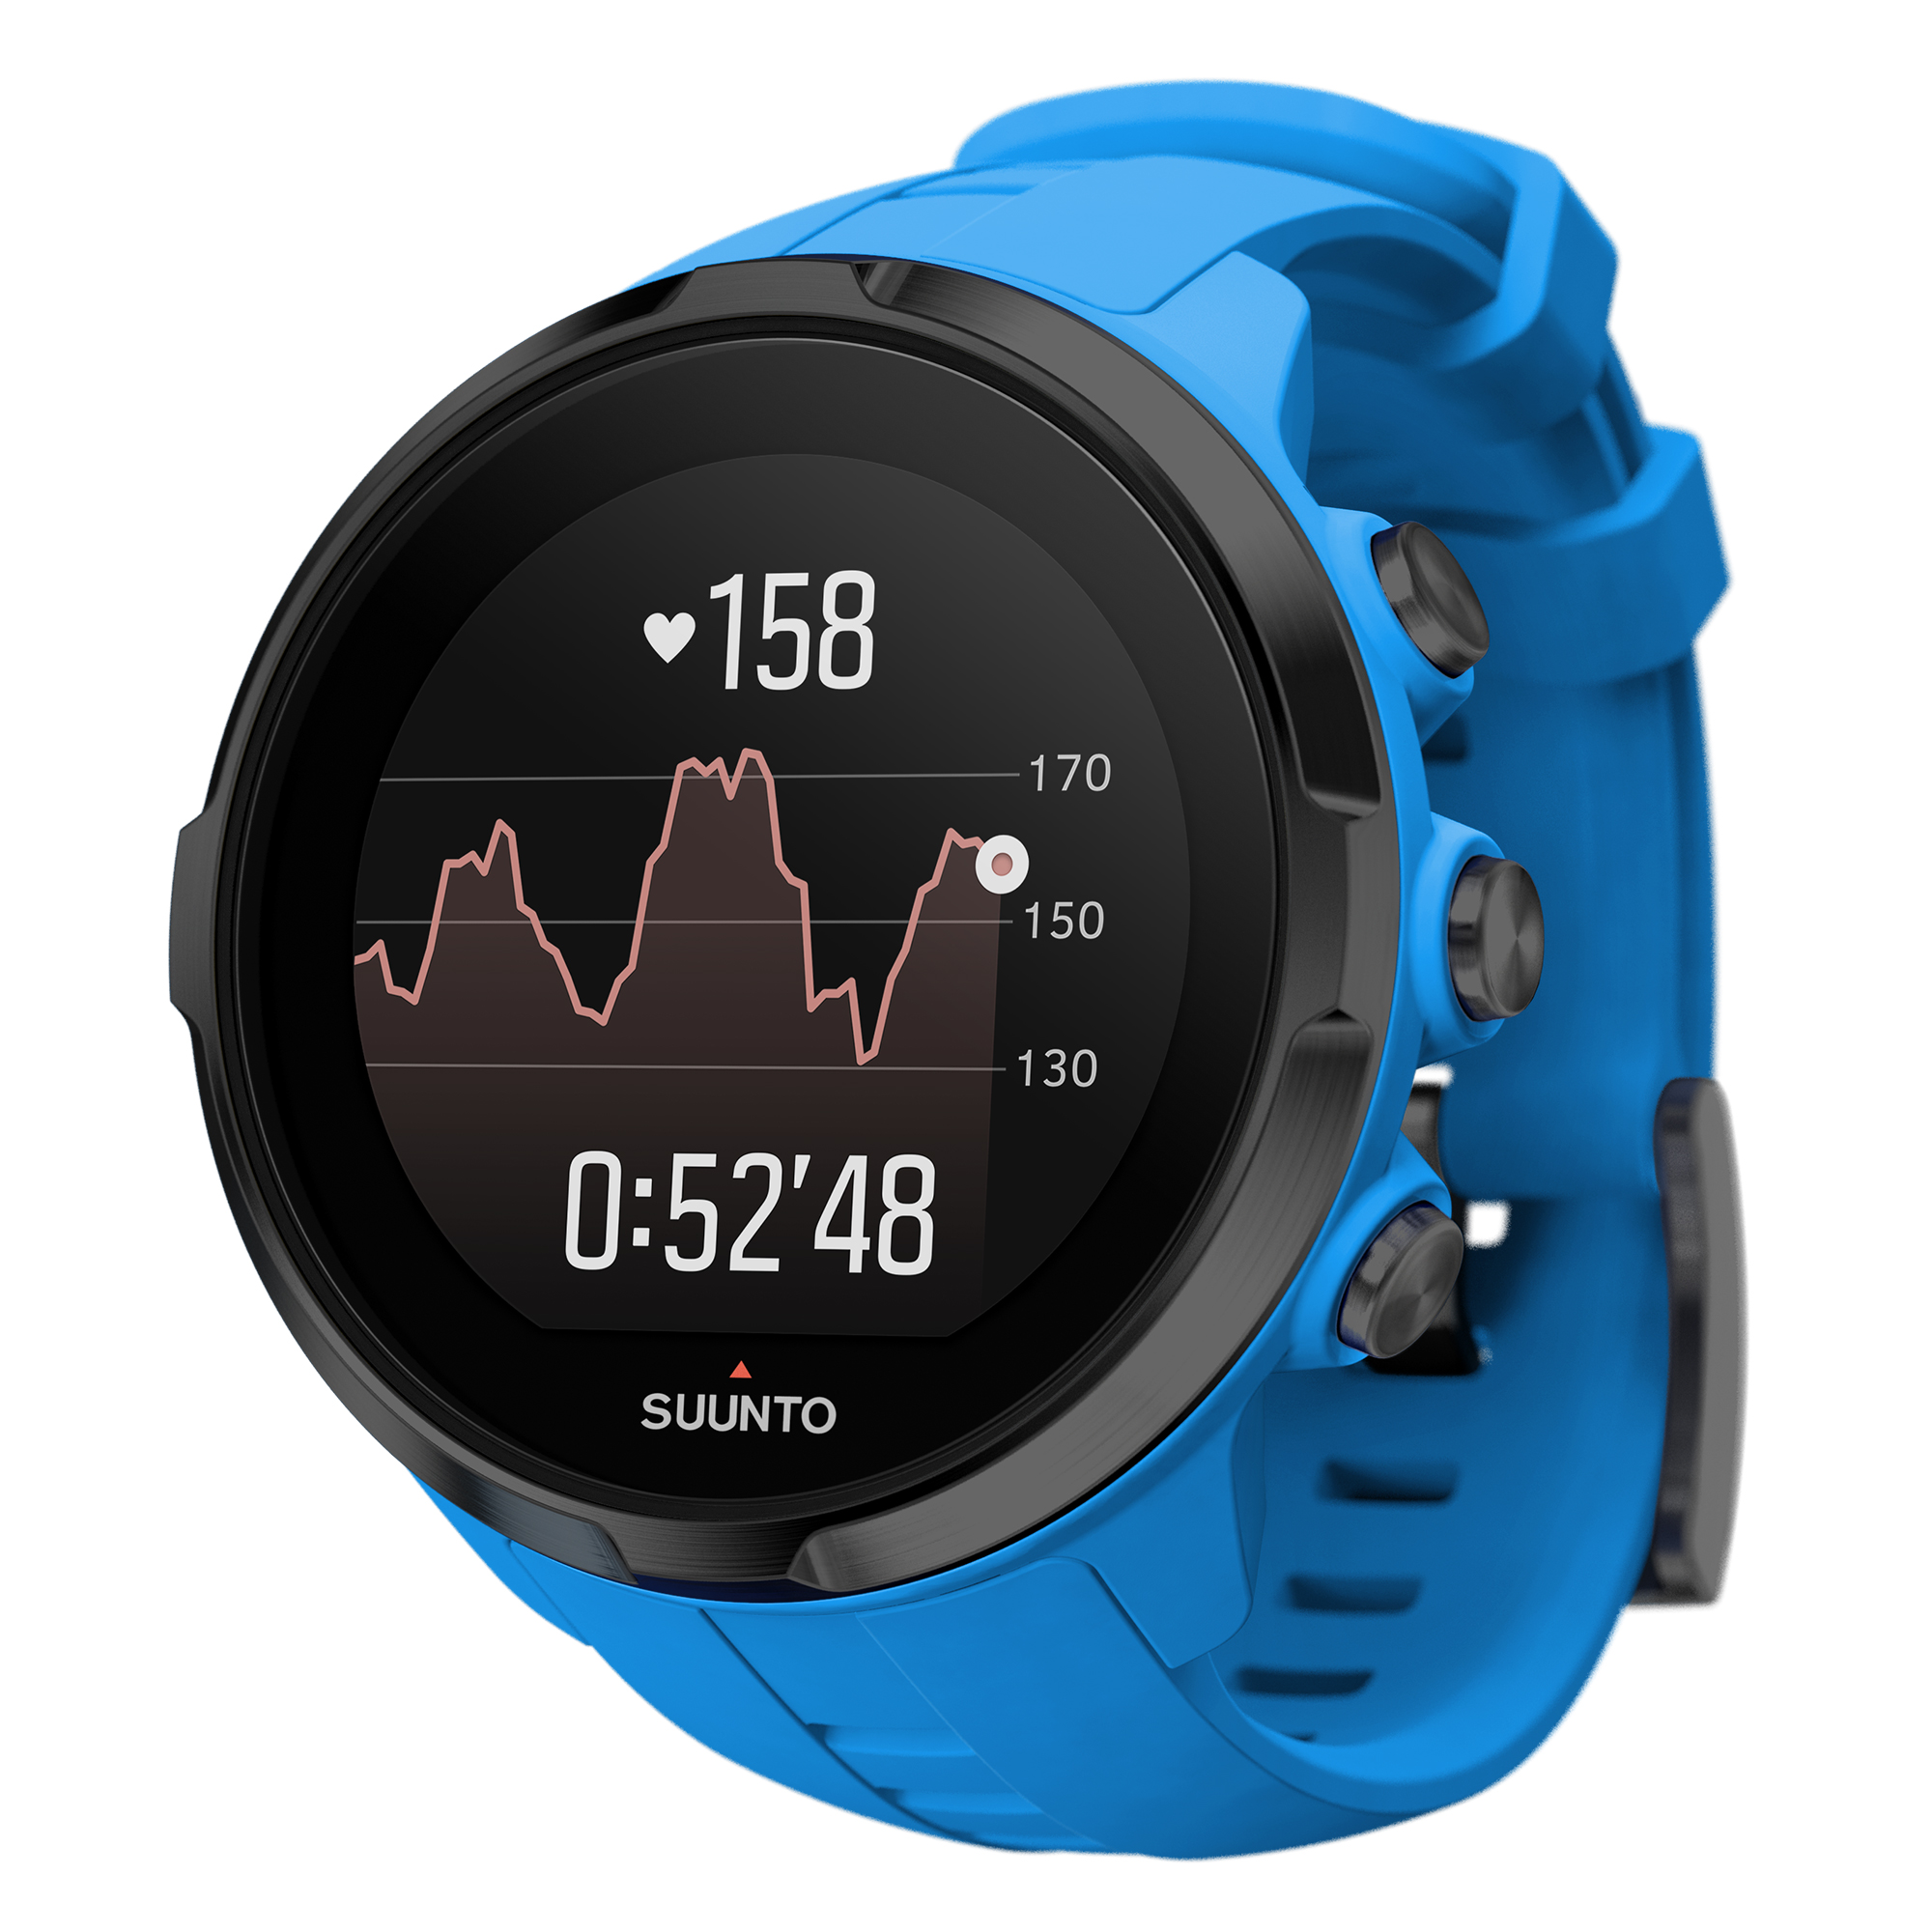 Suunto Spartan Sport Wrist HR Watch, Blue by Suunto